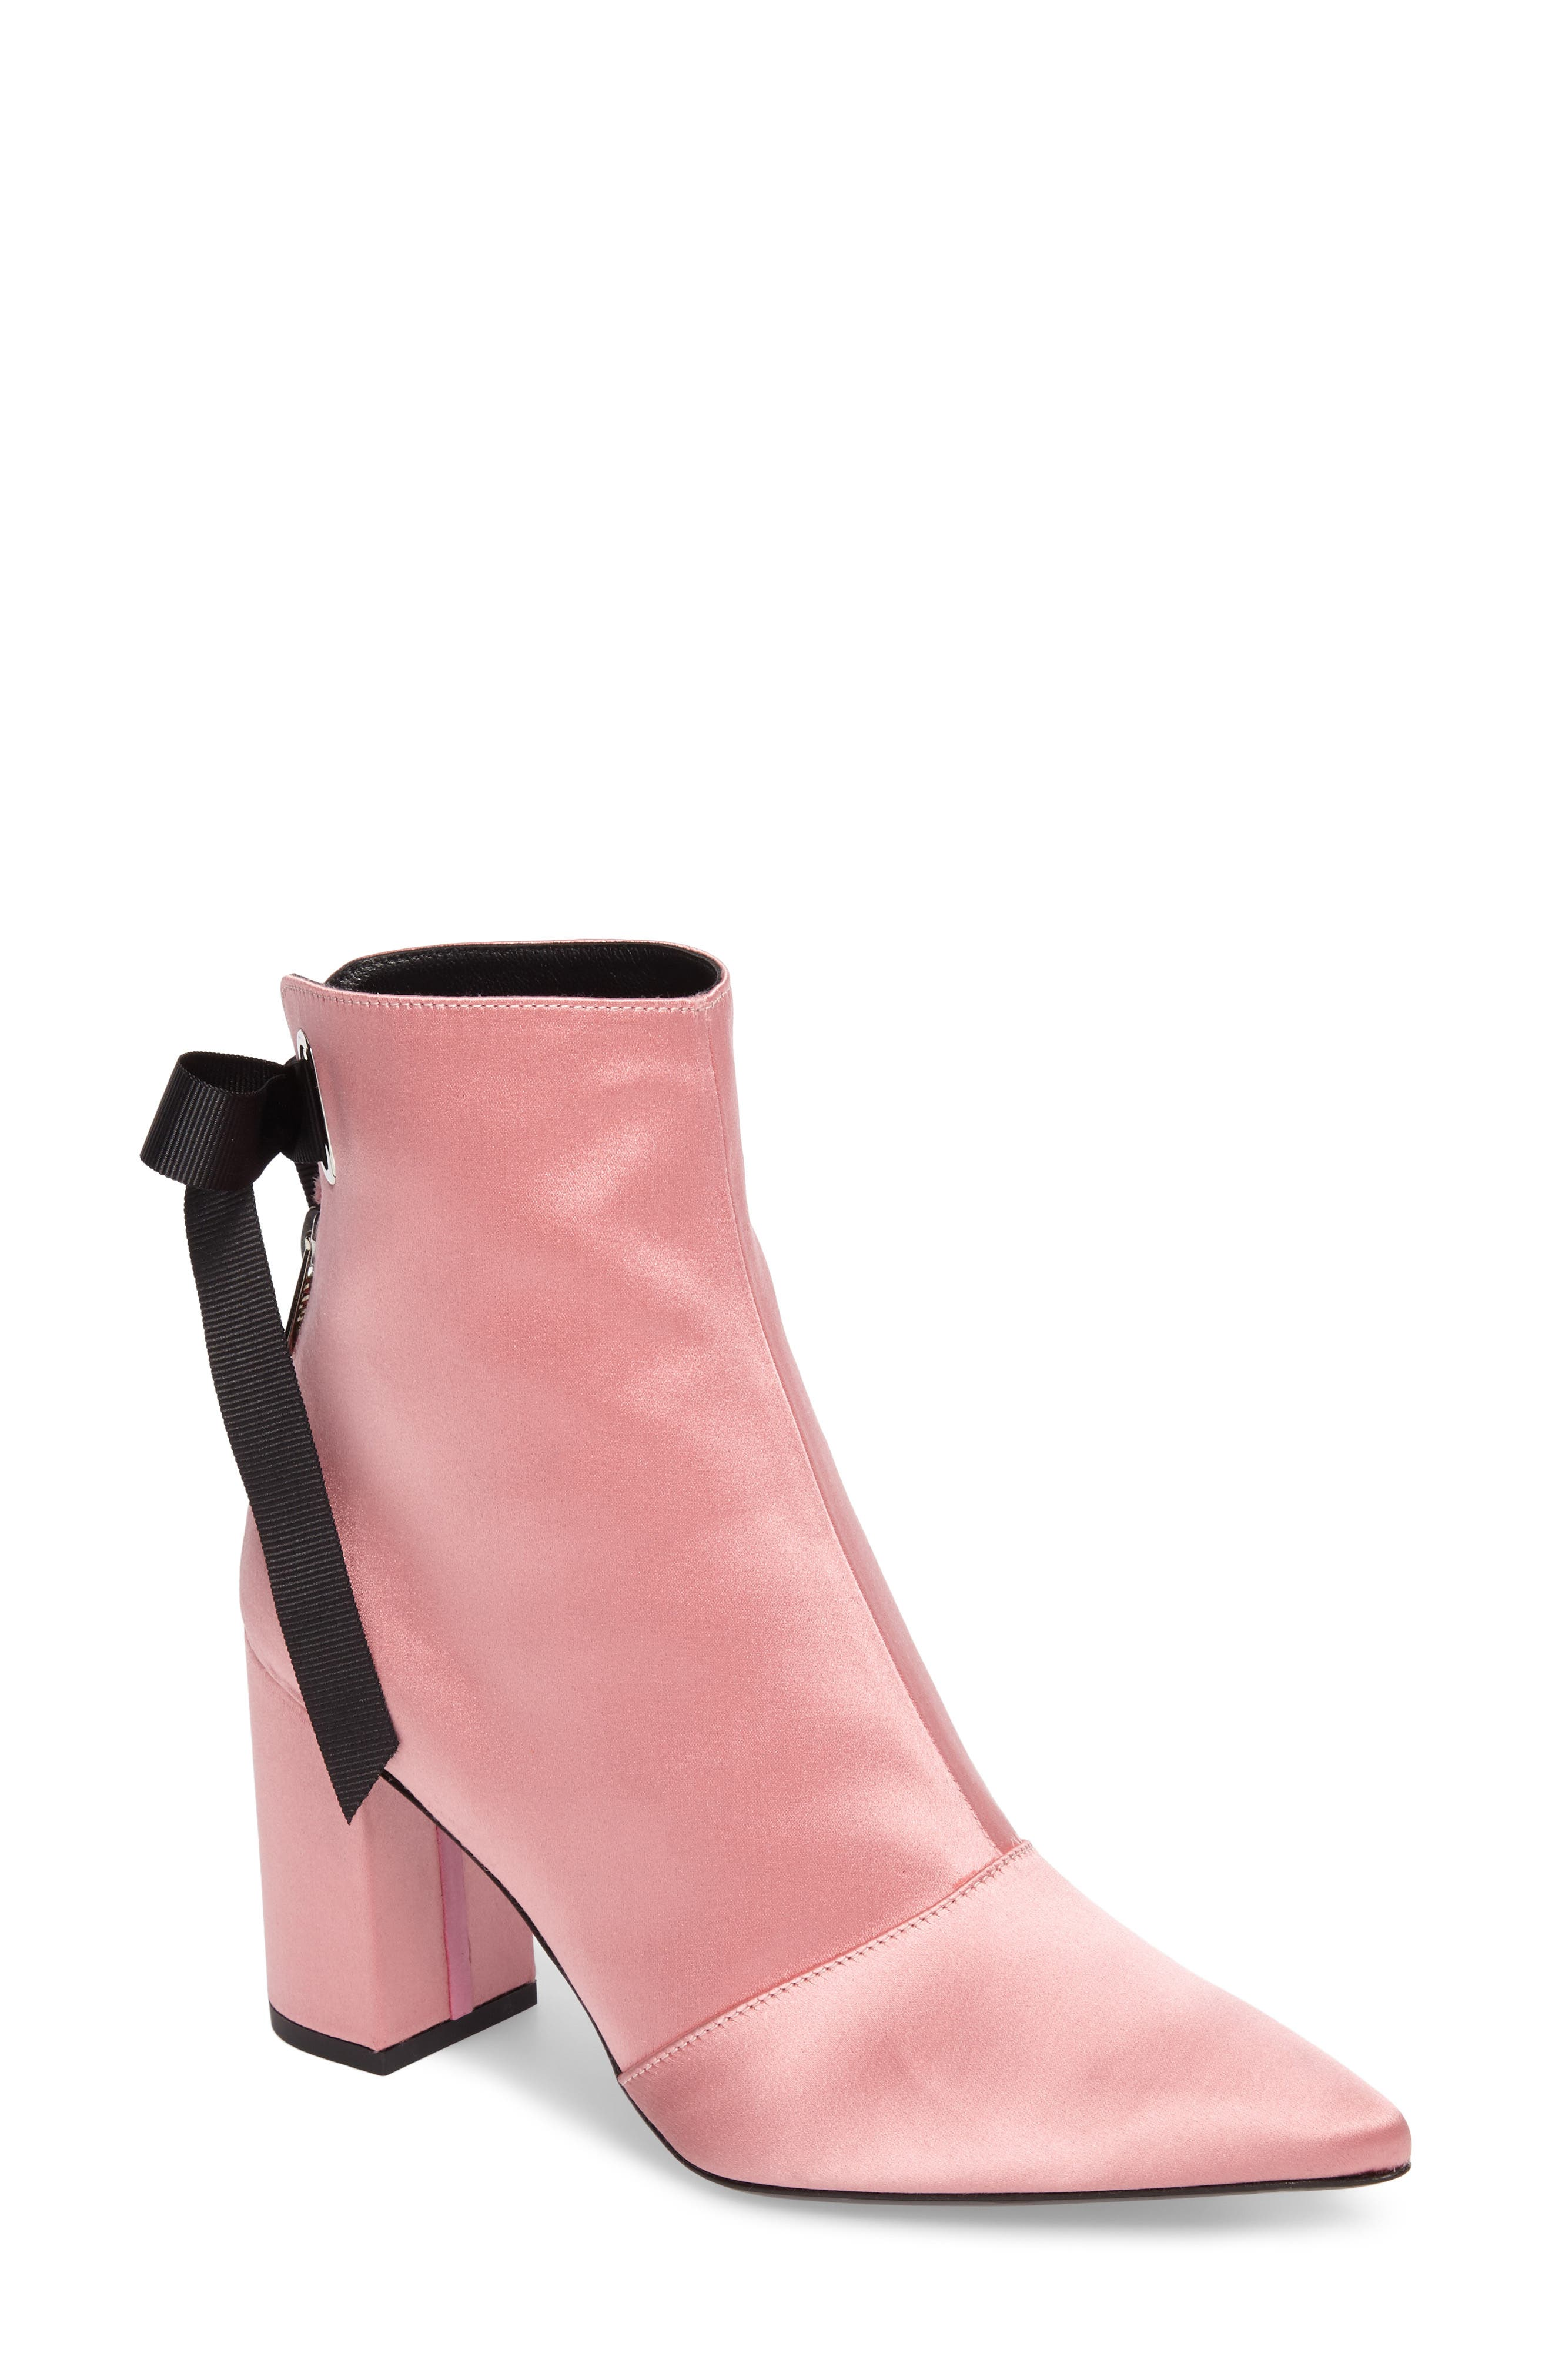 ROBERT CLERGERIE x Self-Portrait Karlis Pointy Toe Bootie, Main, color, 650